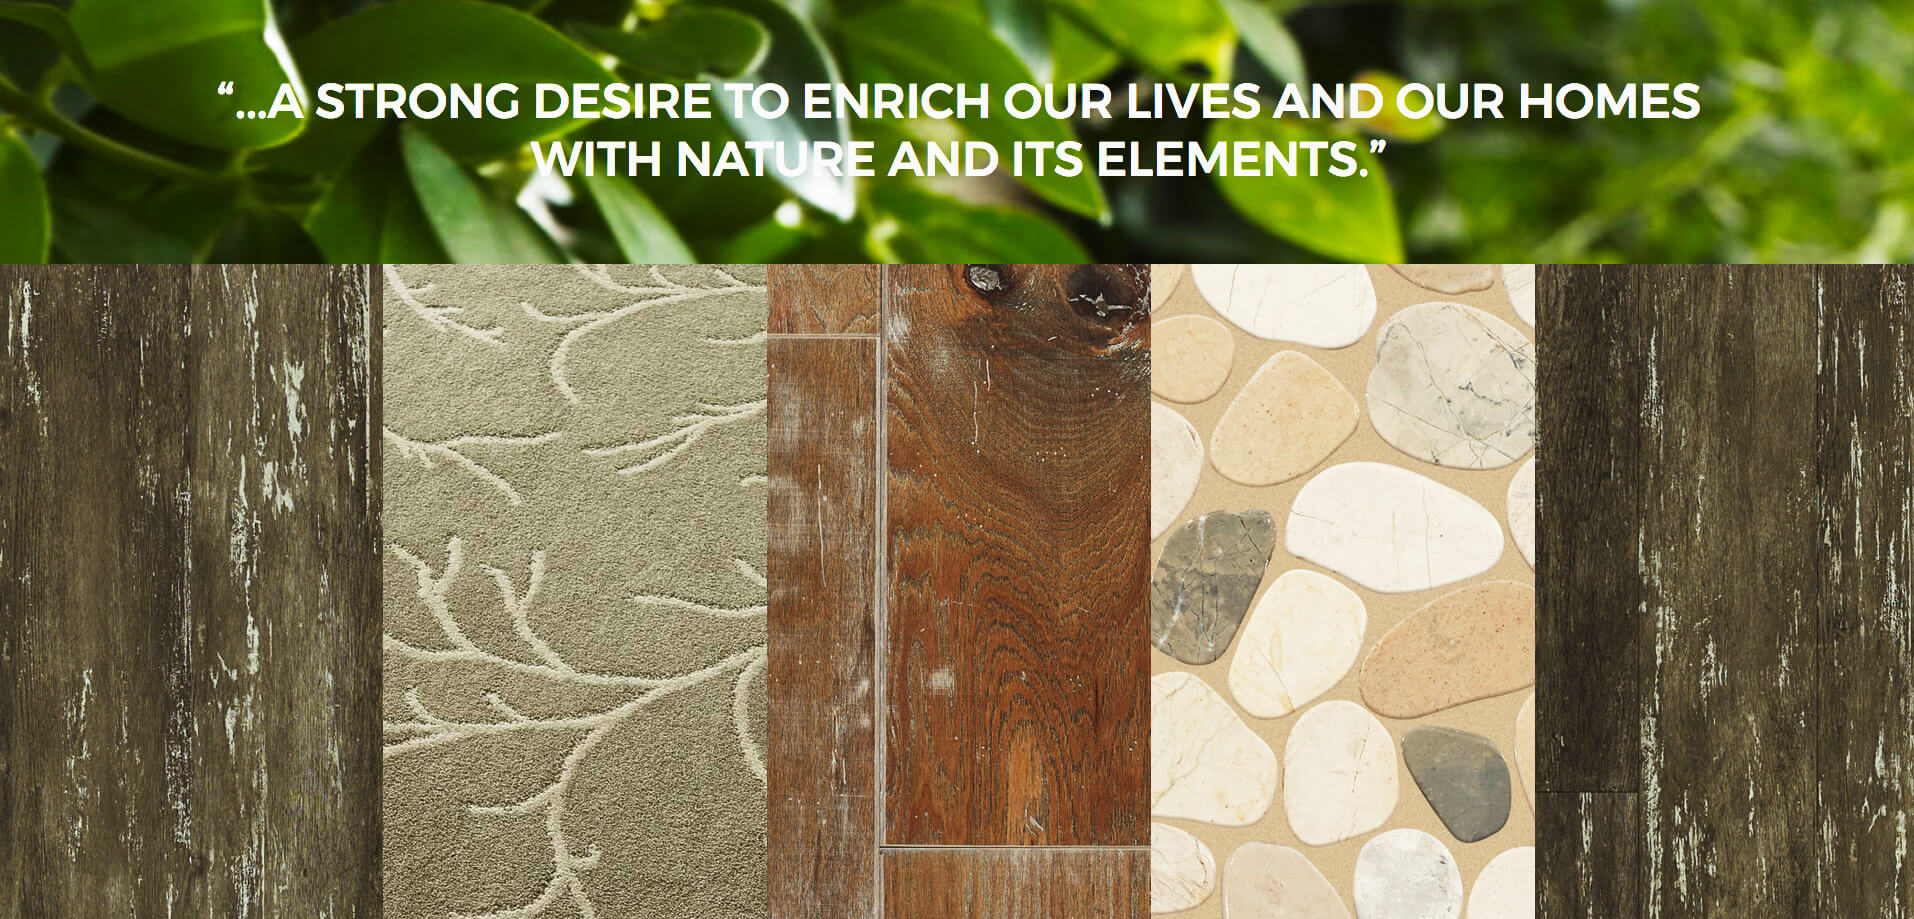 Shaw Extreme Nature textures